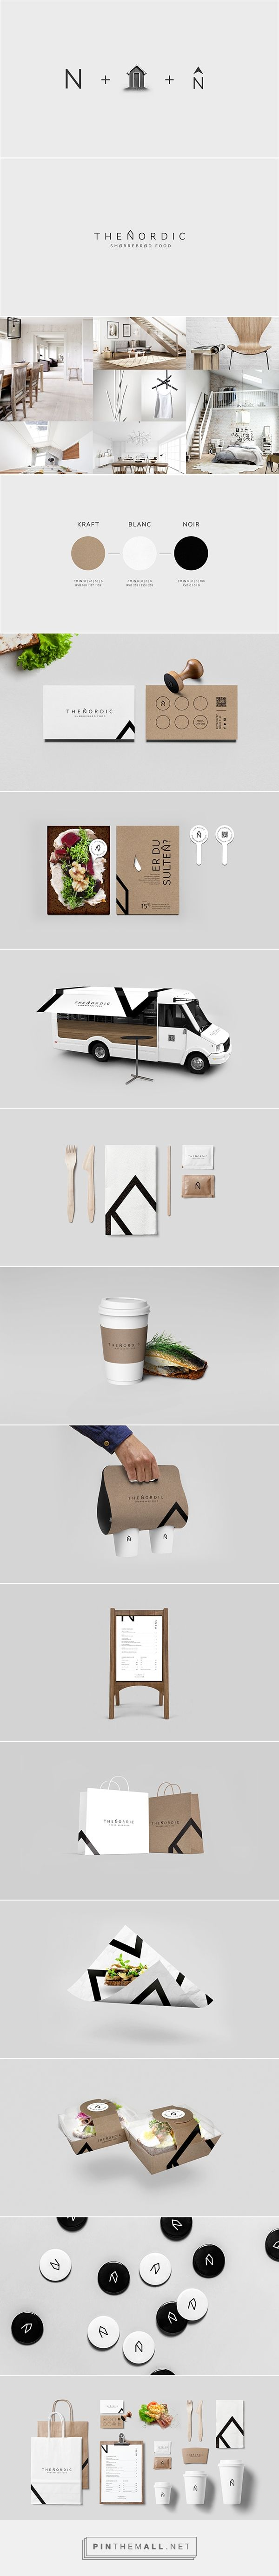 The Nordic | Food Truck on Behance by Alexandre Pietra curated by Packaging Diva PD. The Nordic is a visual packaging identity created for a scandinavian Food Truck.